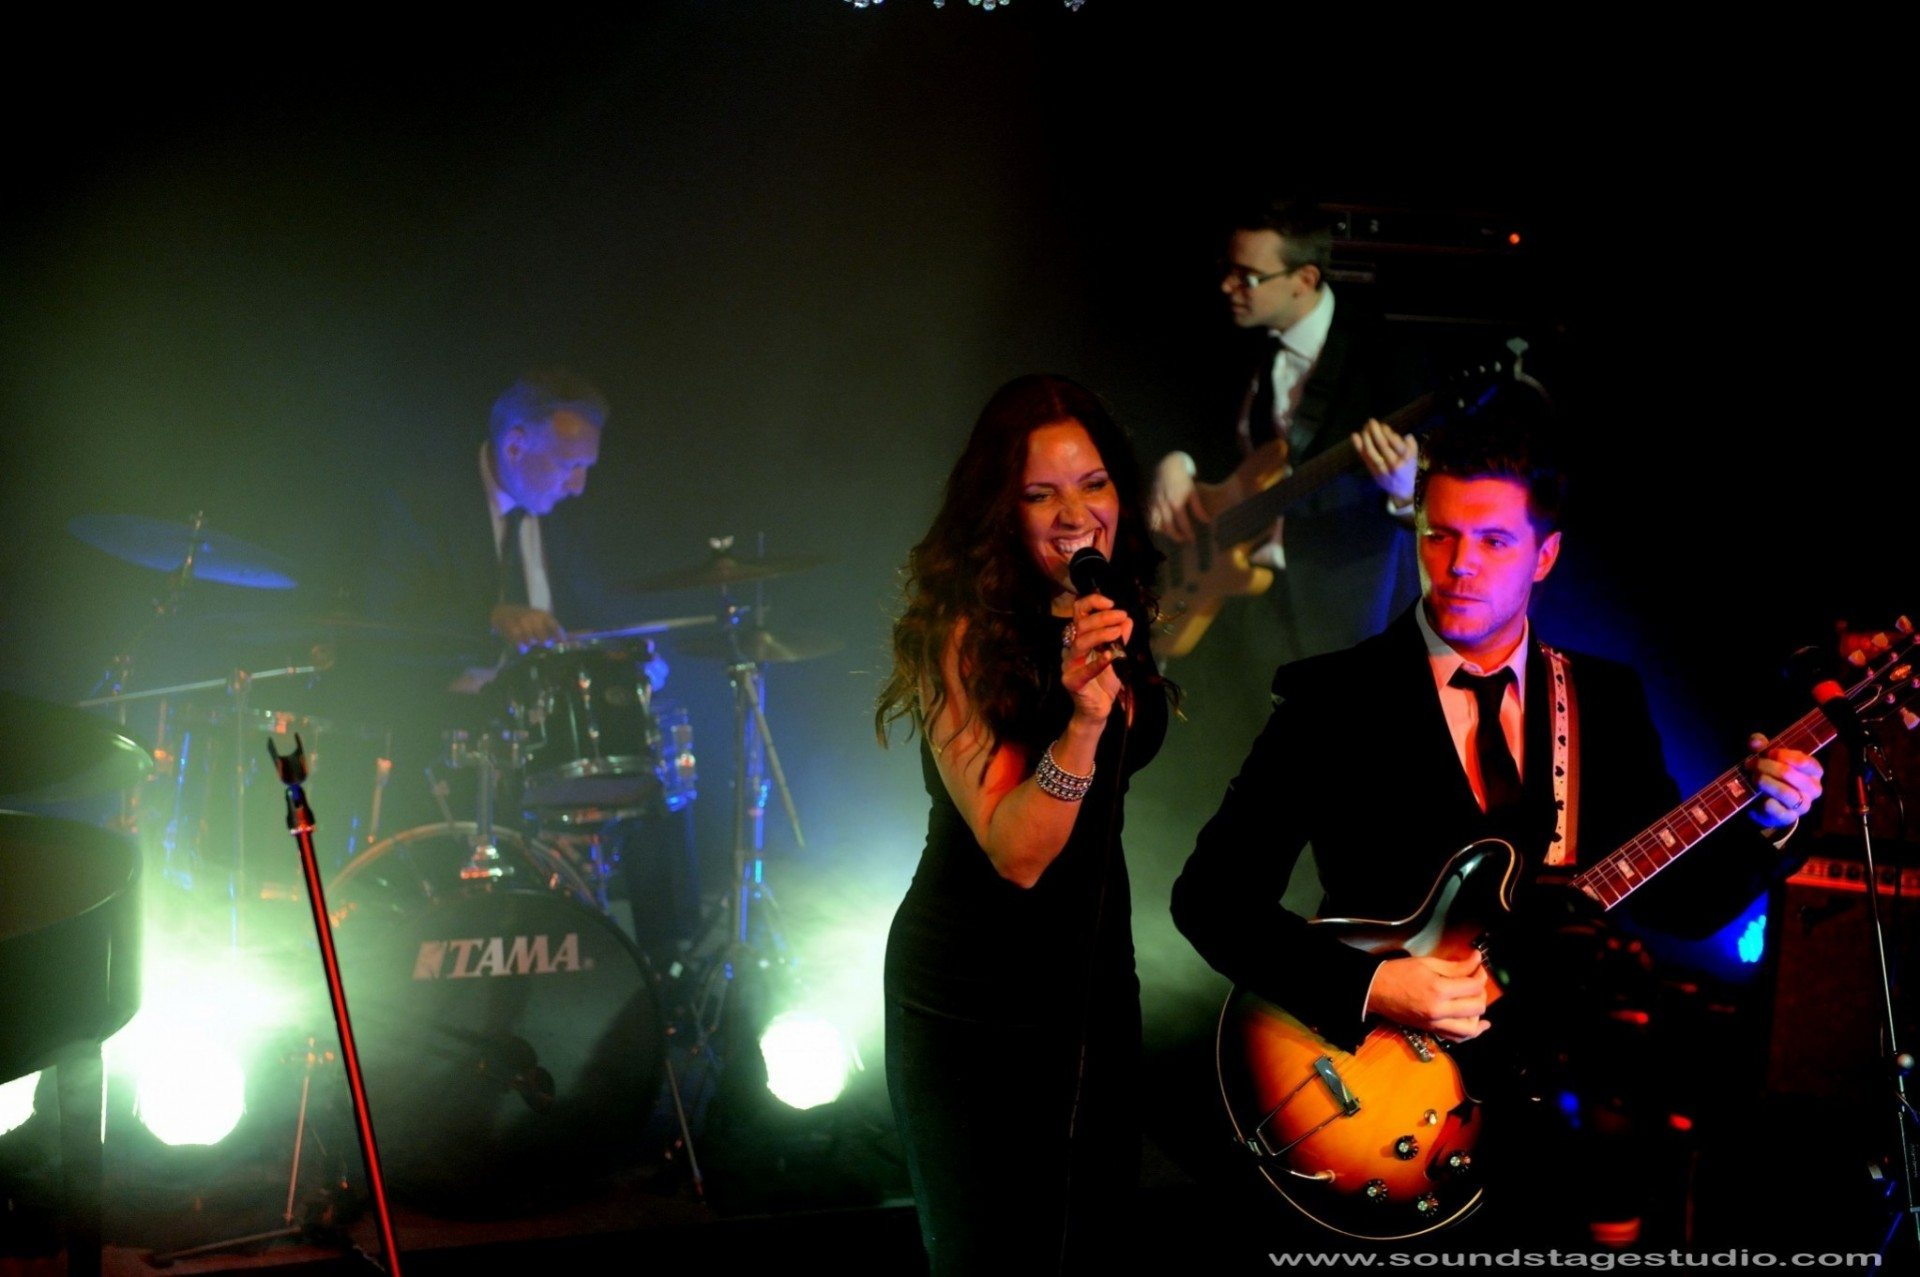 THE MARTINIS - DSC_1822_239